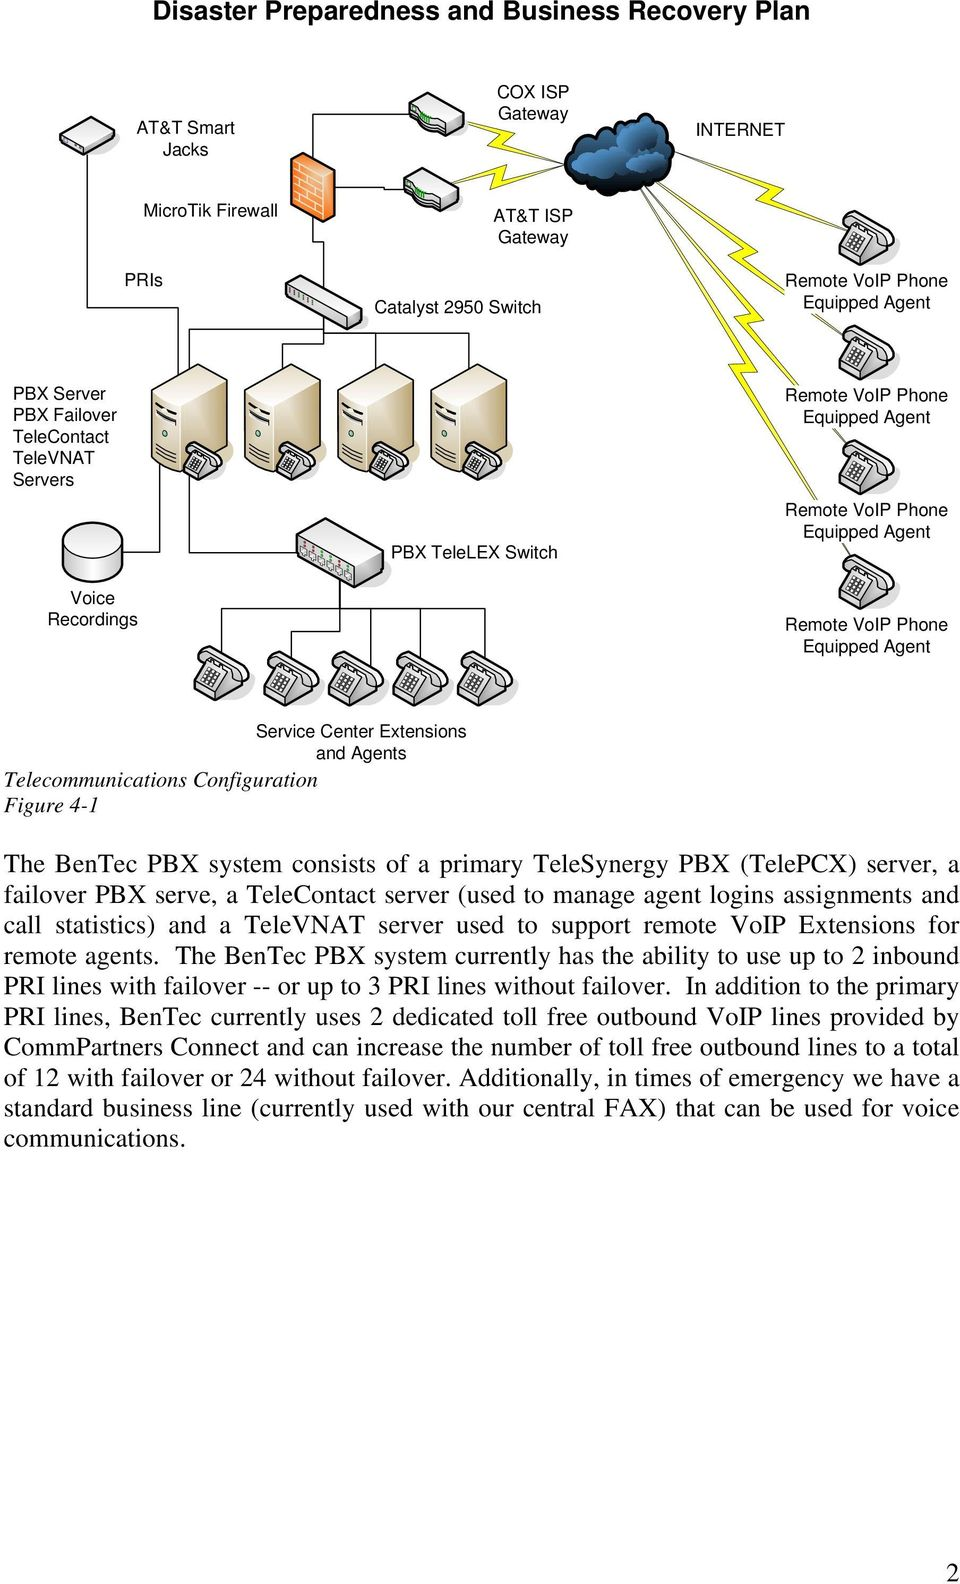 Figure 4-1 The BenTec PBX system consists of a primary TeleSynergy PBX (TelePCX) server, a failover PBX serve, a TeleContact server (used to manage agent logins assignments and call statistics) and a